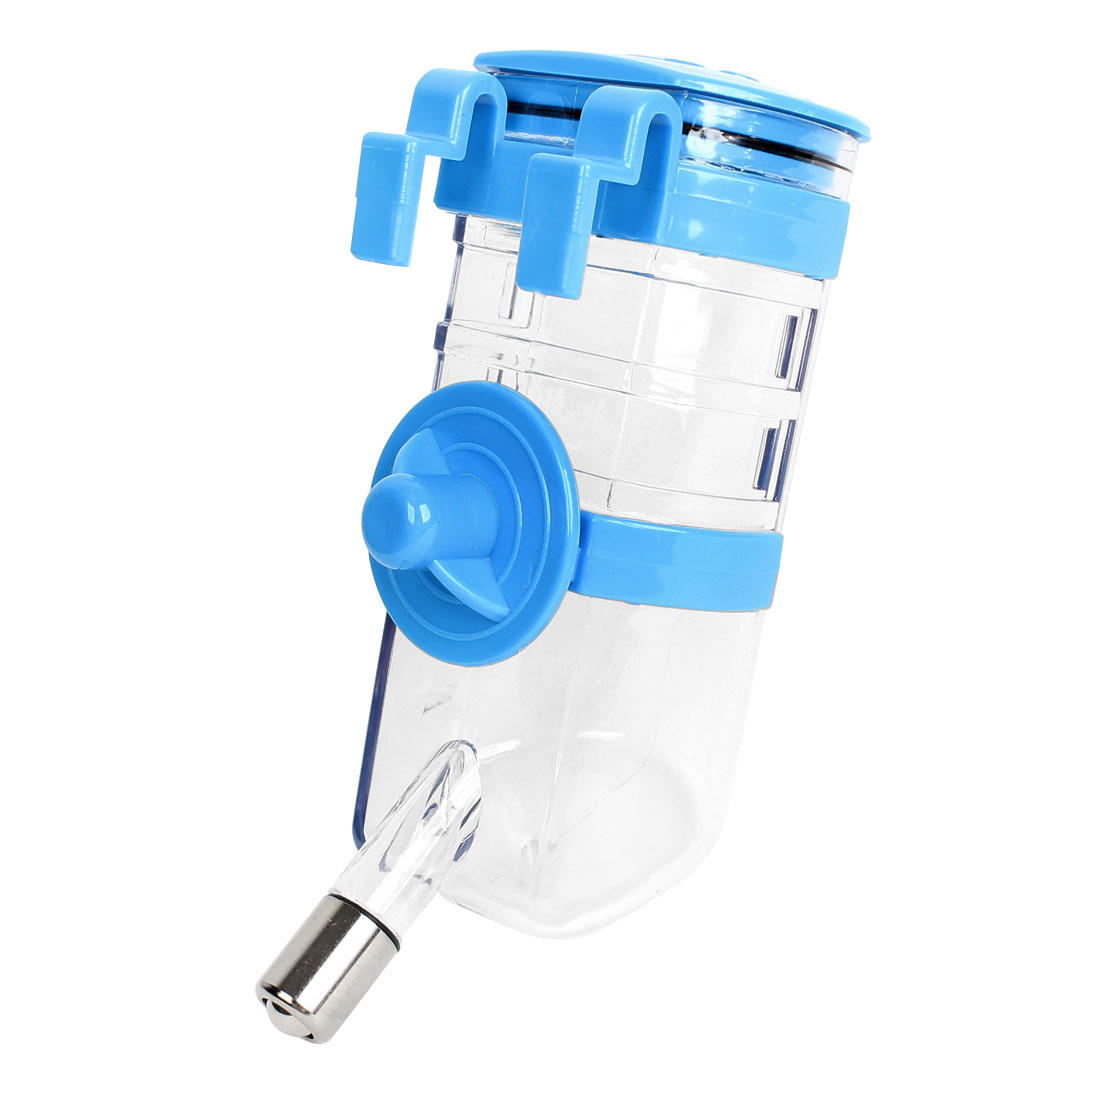 Plastic Pet Hamsters Dog Drinking Hanging Feed Water Fountain Bottle Blue Clear 350ml